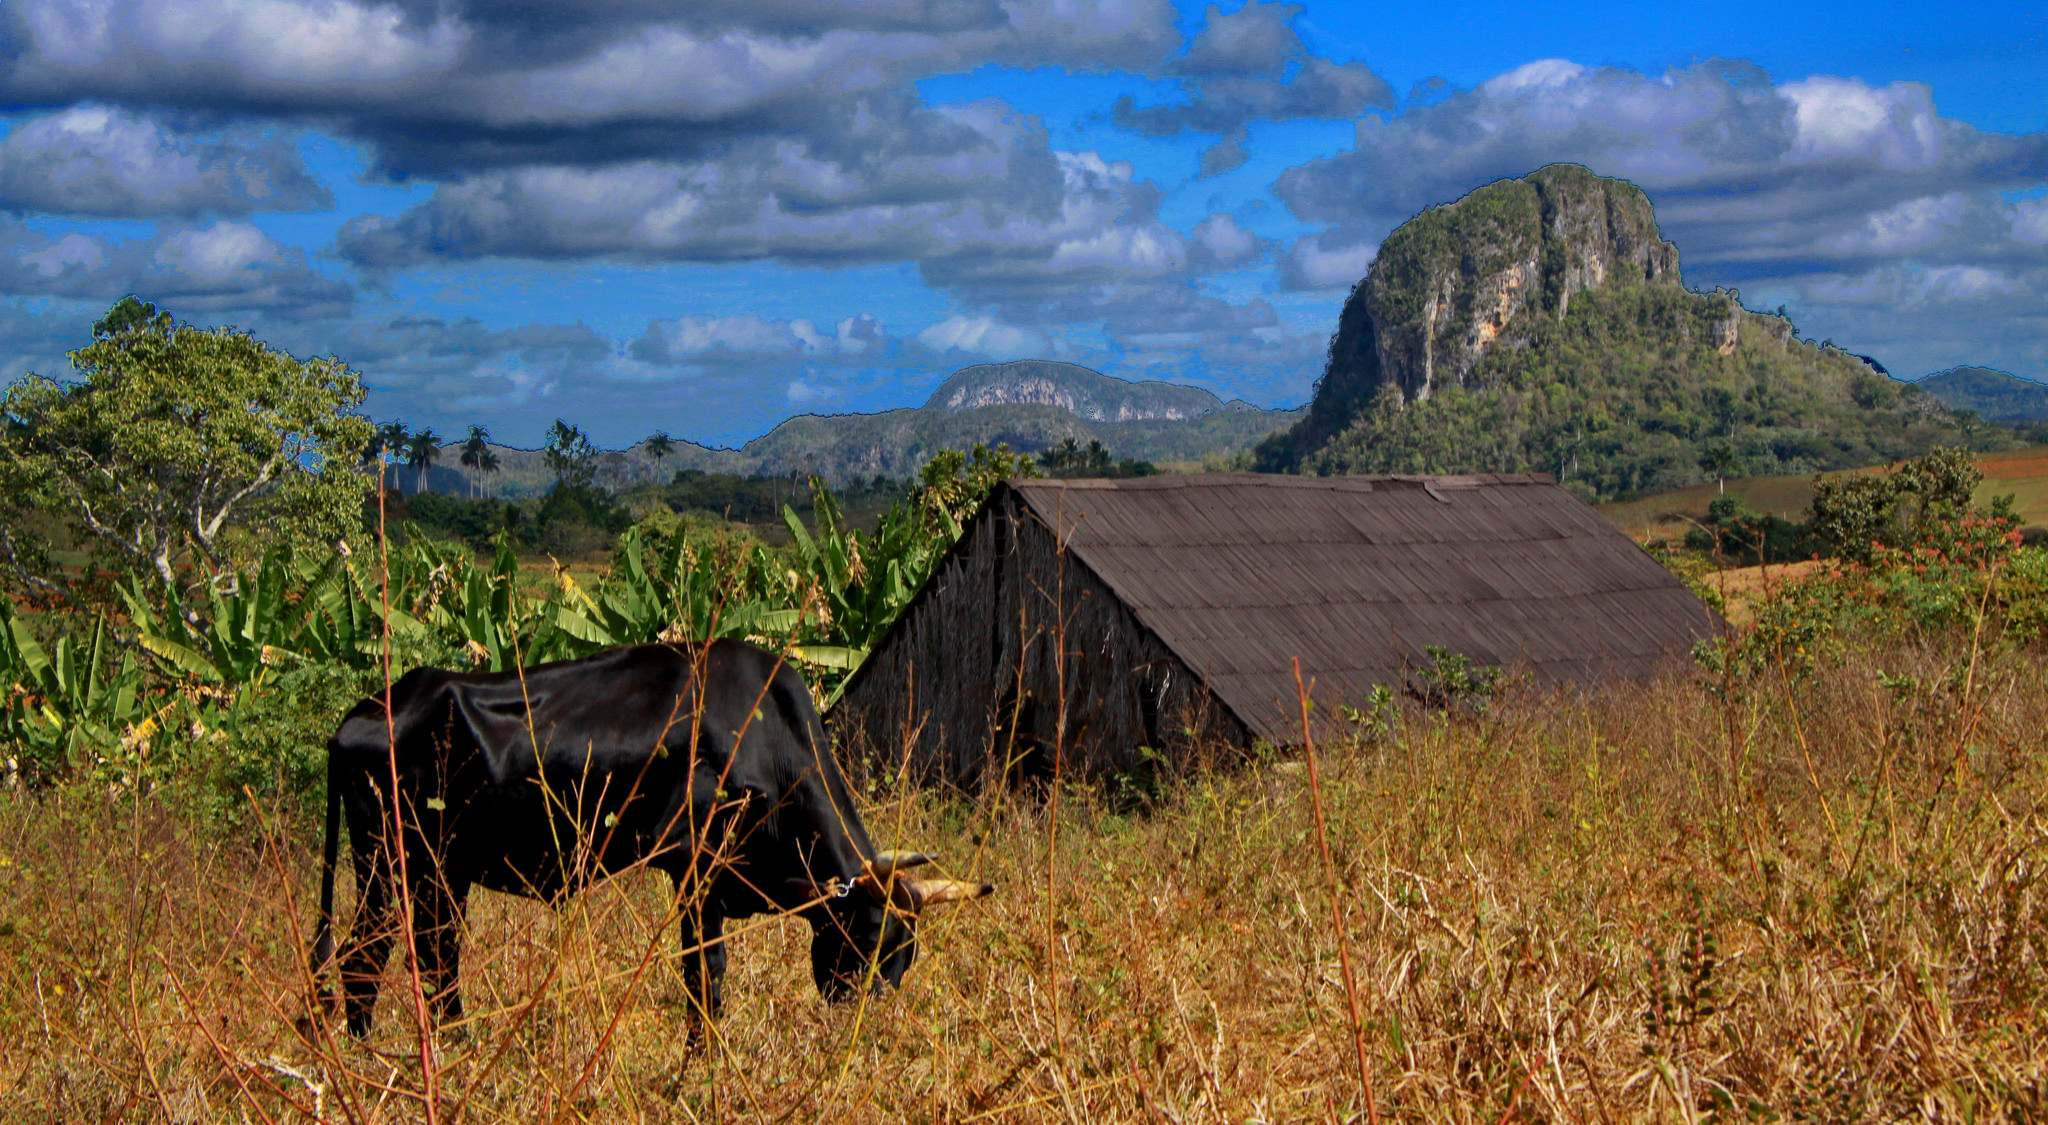 vinales valley3 Vinales Valley   UNESCO World Heritage Site